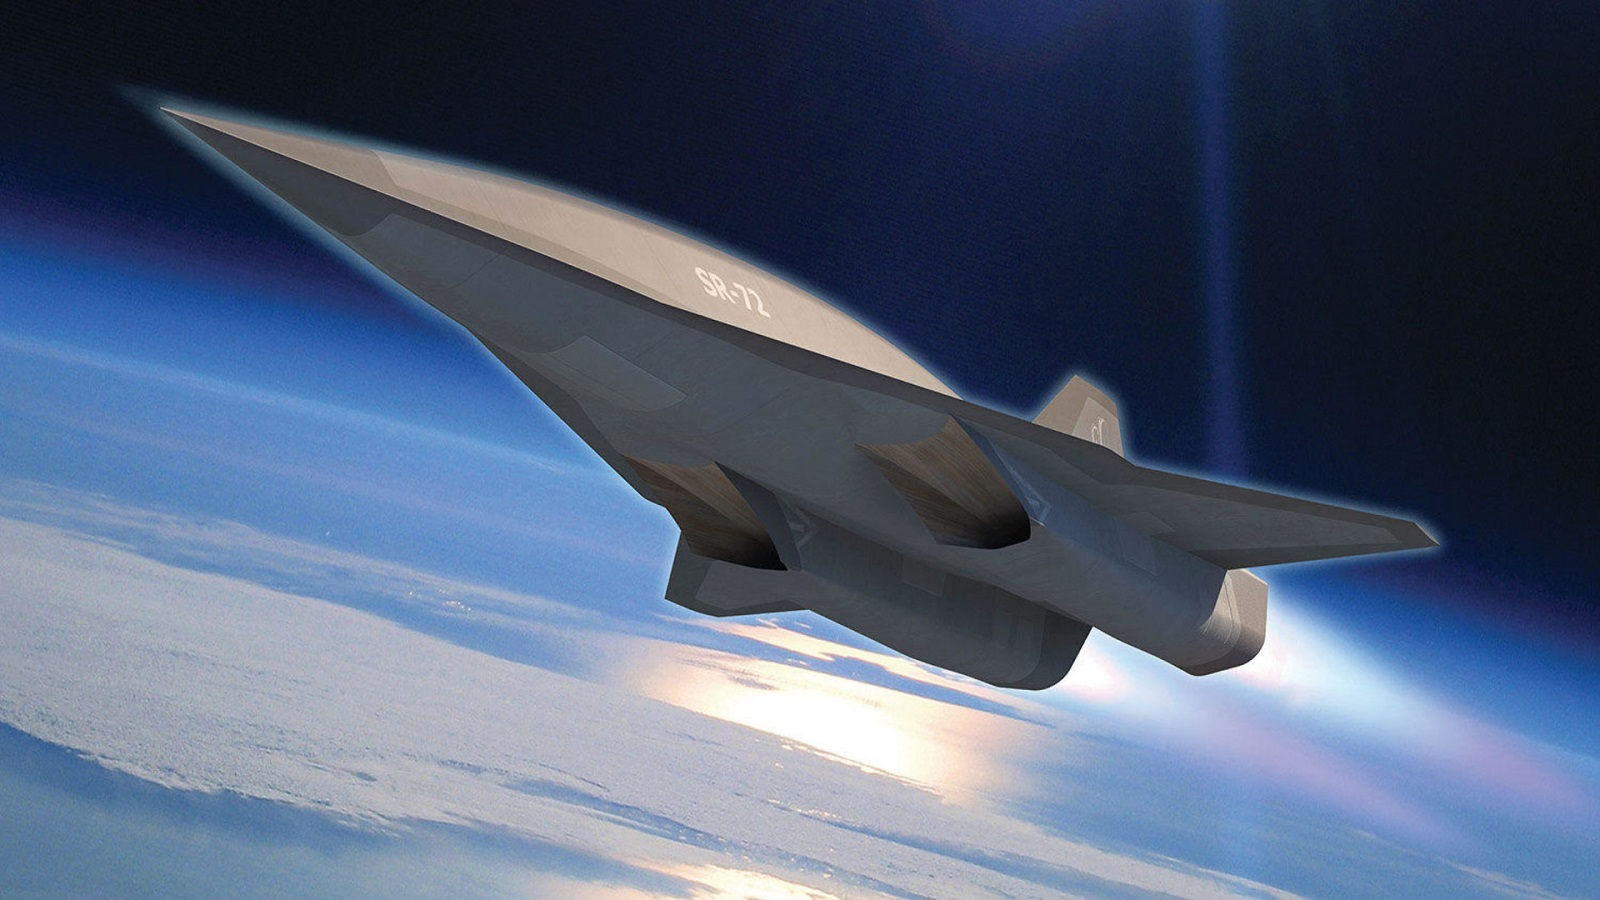 The Super Secret SR-72 Spy Plane (That Might Also Be a Stealth Bomber)